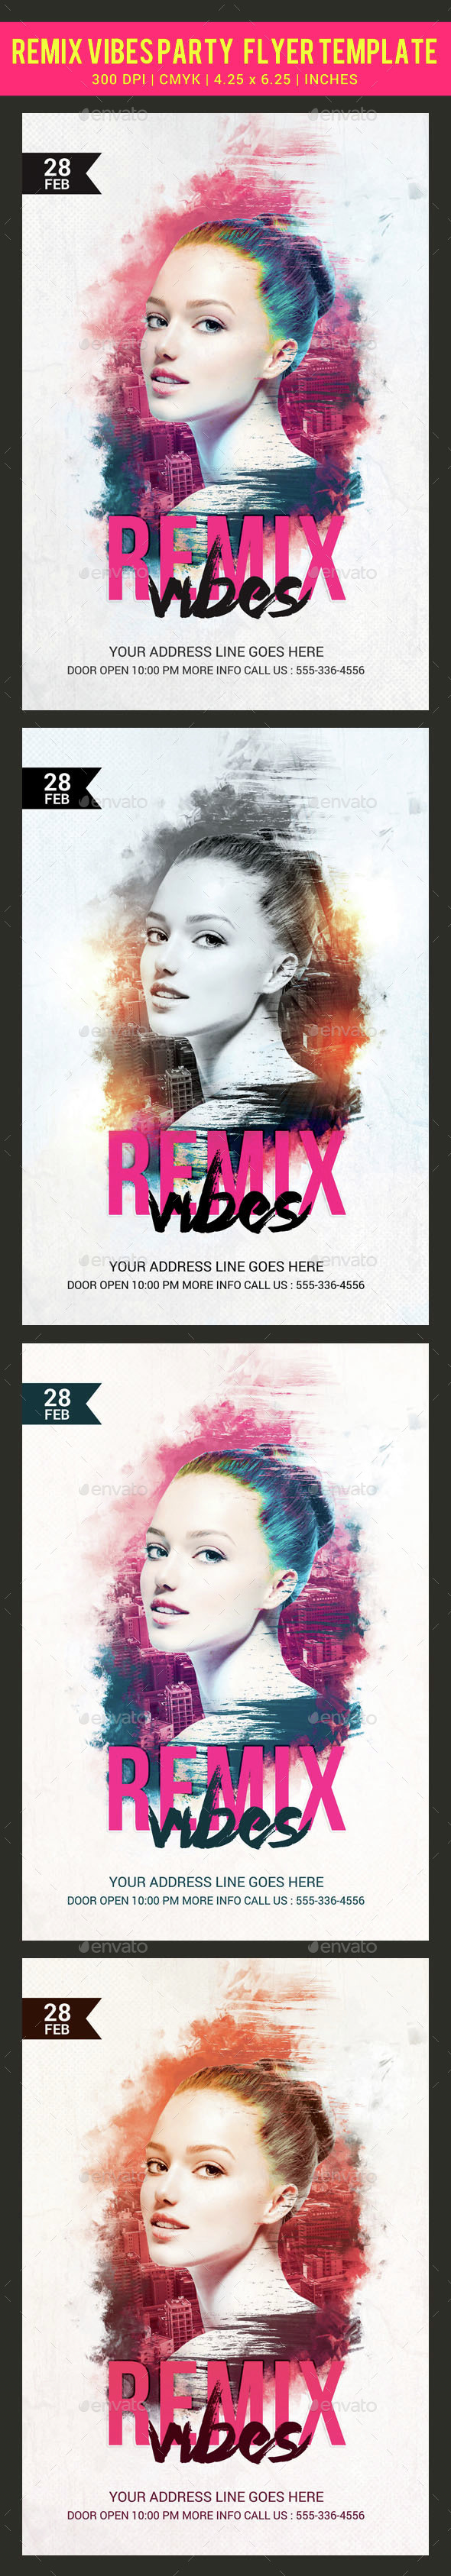 Remix Vibes Party Flyer Template - Clubs & Parties Events